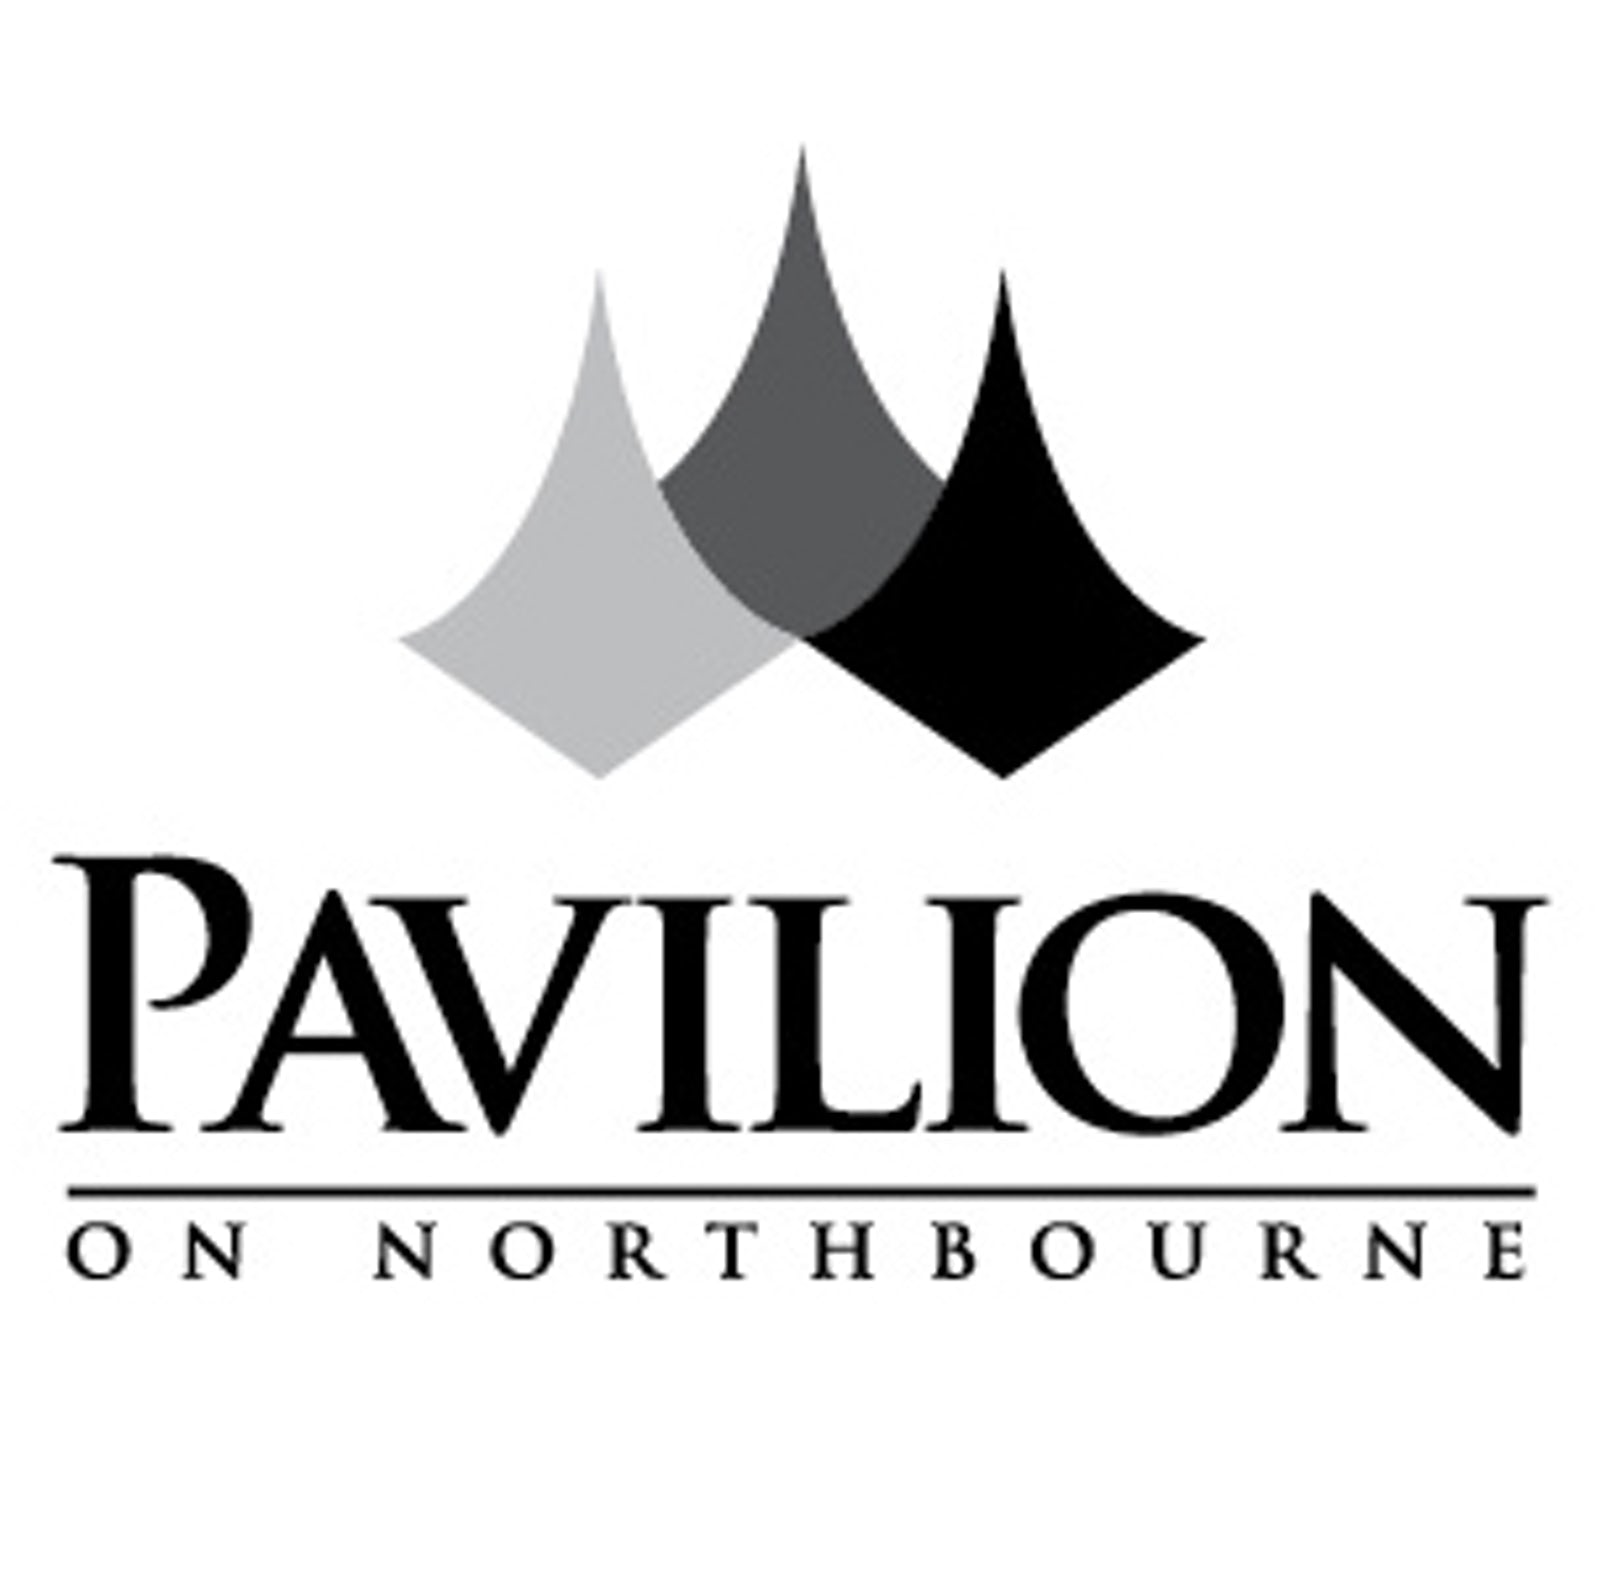 Picture of the hotel Pavilion on Northbourne logo